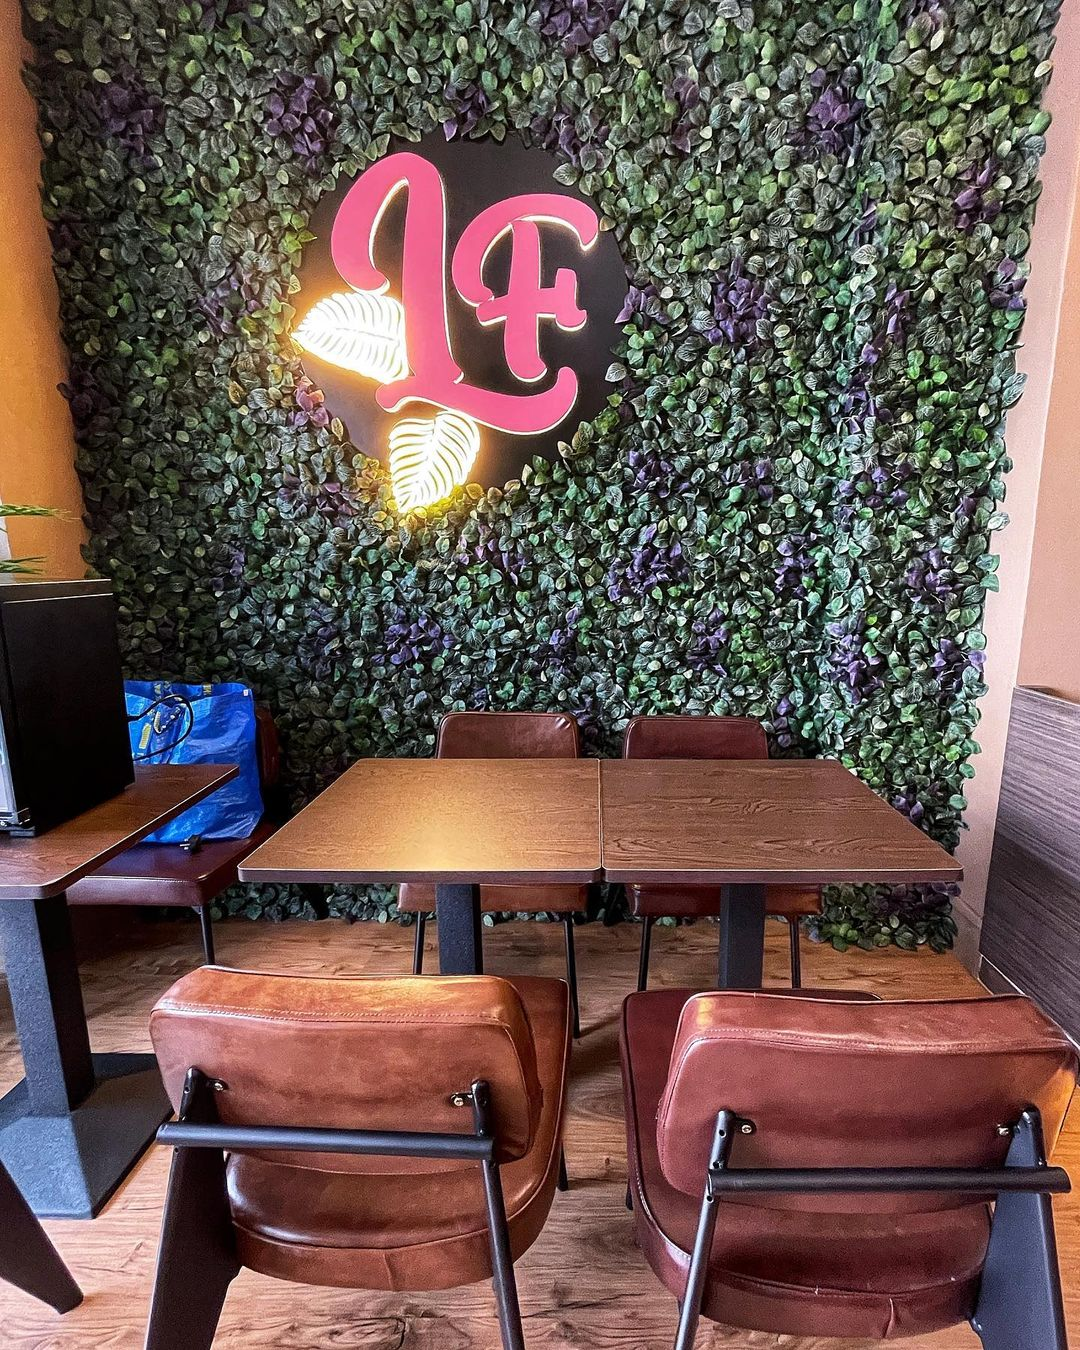 Lola Faye Café - new cafes and restaurants august 2021